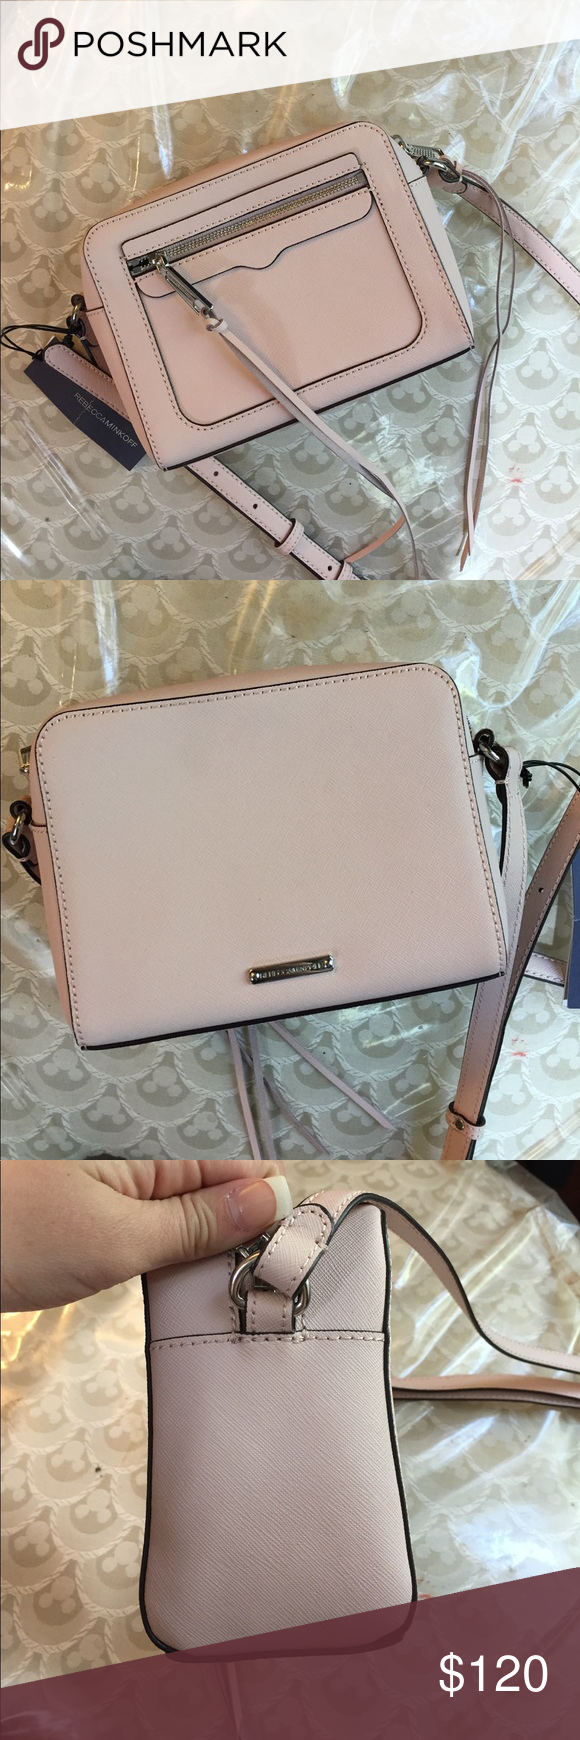 NWT Pale Pink Rebecca Minkoff Handbag Brand new super cute Rebecca minkoff Avery Camera bag! Never been worn and still has original tags so there is absolutely no damage to the bag whatsoever. Is a light pink color with silver hardware and black interior. Such a steal! Rebecca Minkoff Bags Mini Bags